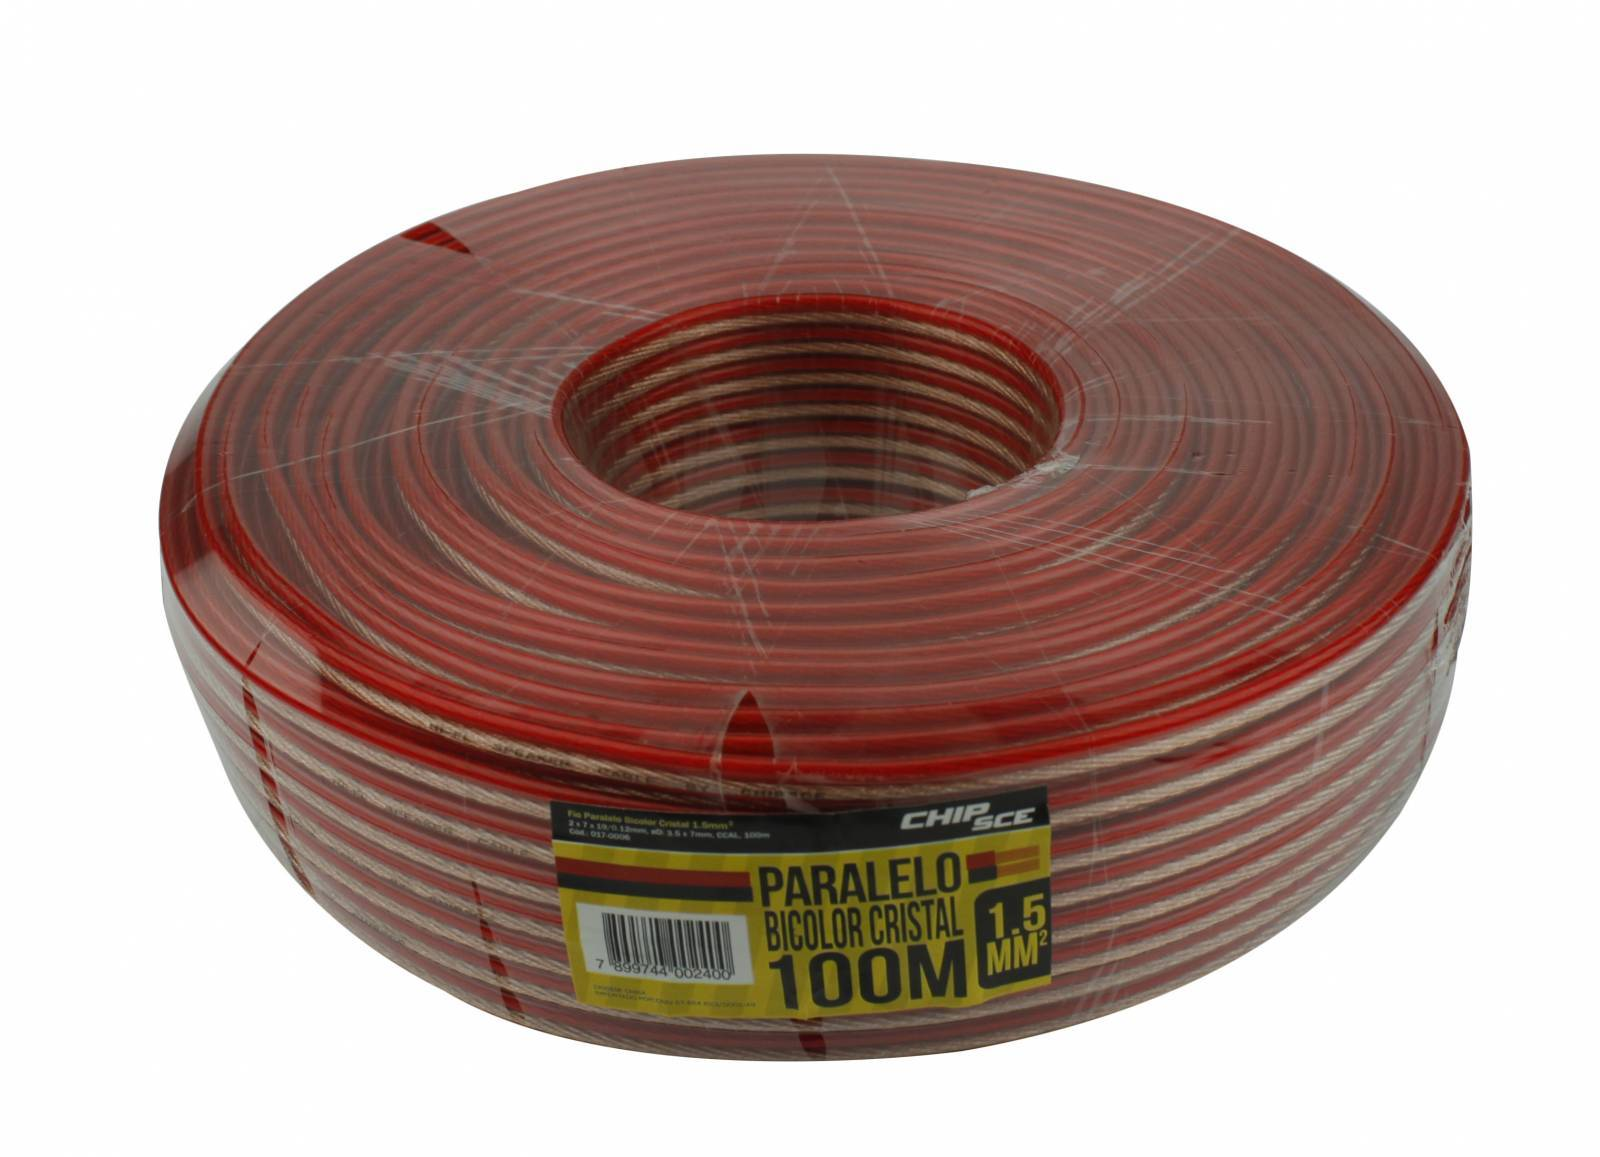 Fio Paralelo bicolor Cristal 2x1,50mm C/ 100mt - CHIP SCE